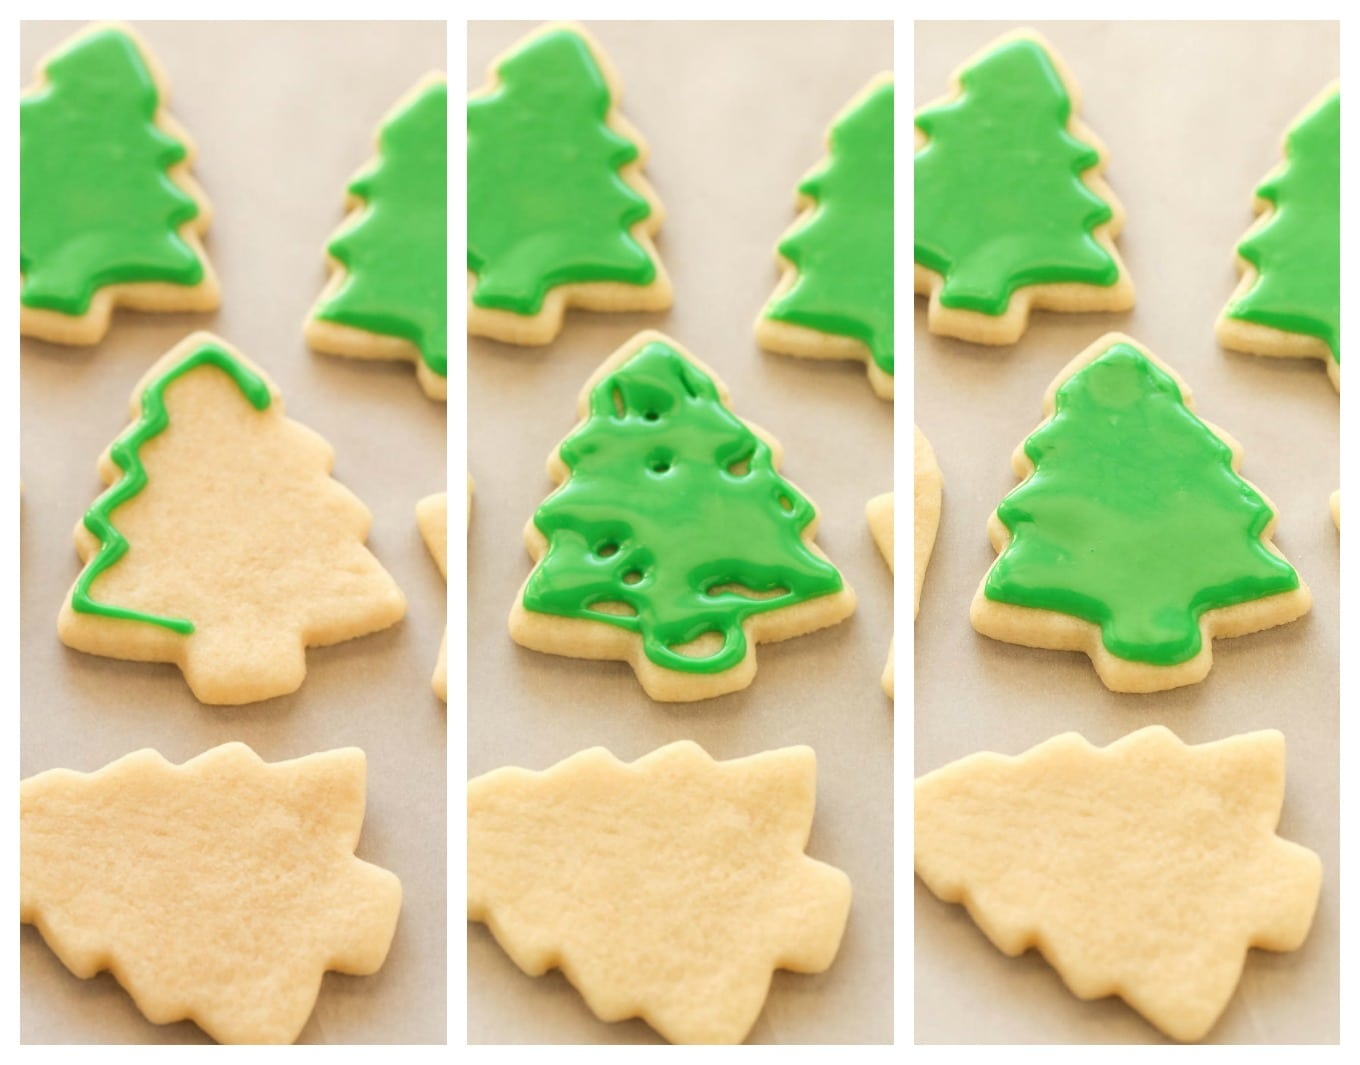 super soft cut out sugar coosuper soft cut out sugar cookies decorated with an